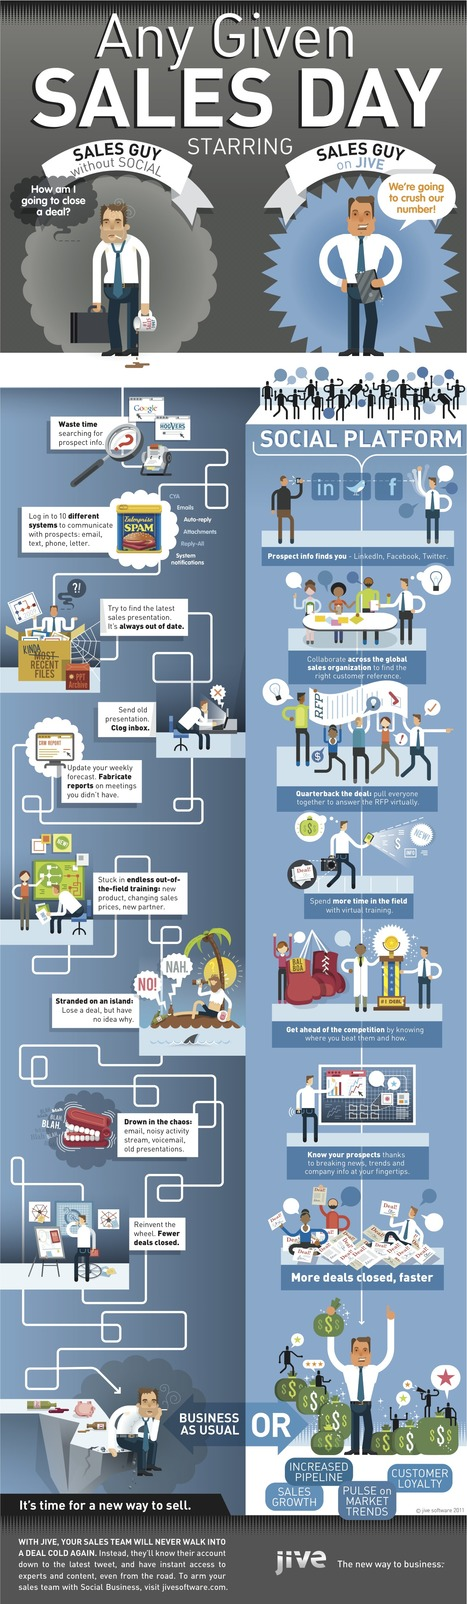 Sales Enablement Goes Social [Infographic] | SOCIAL MEDIA, what we think about! | Scoop.it